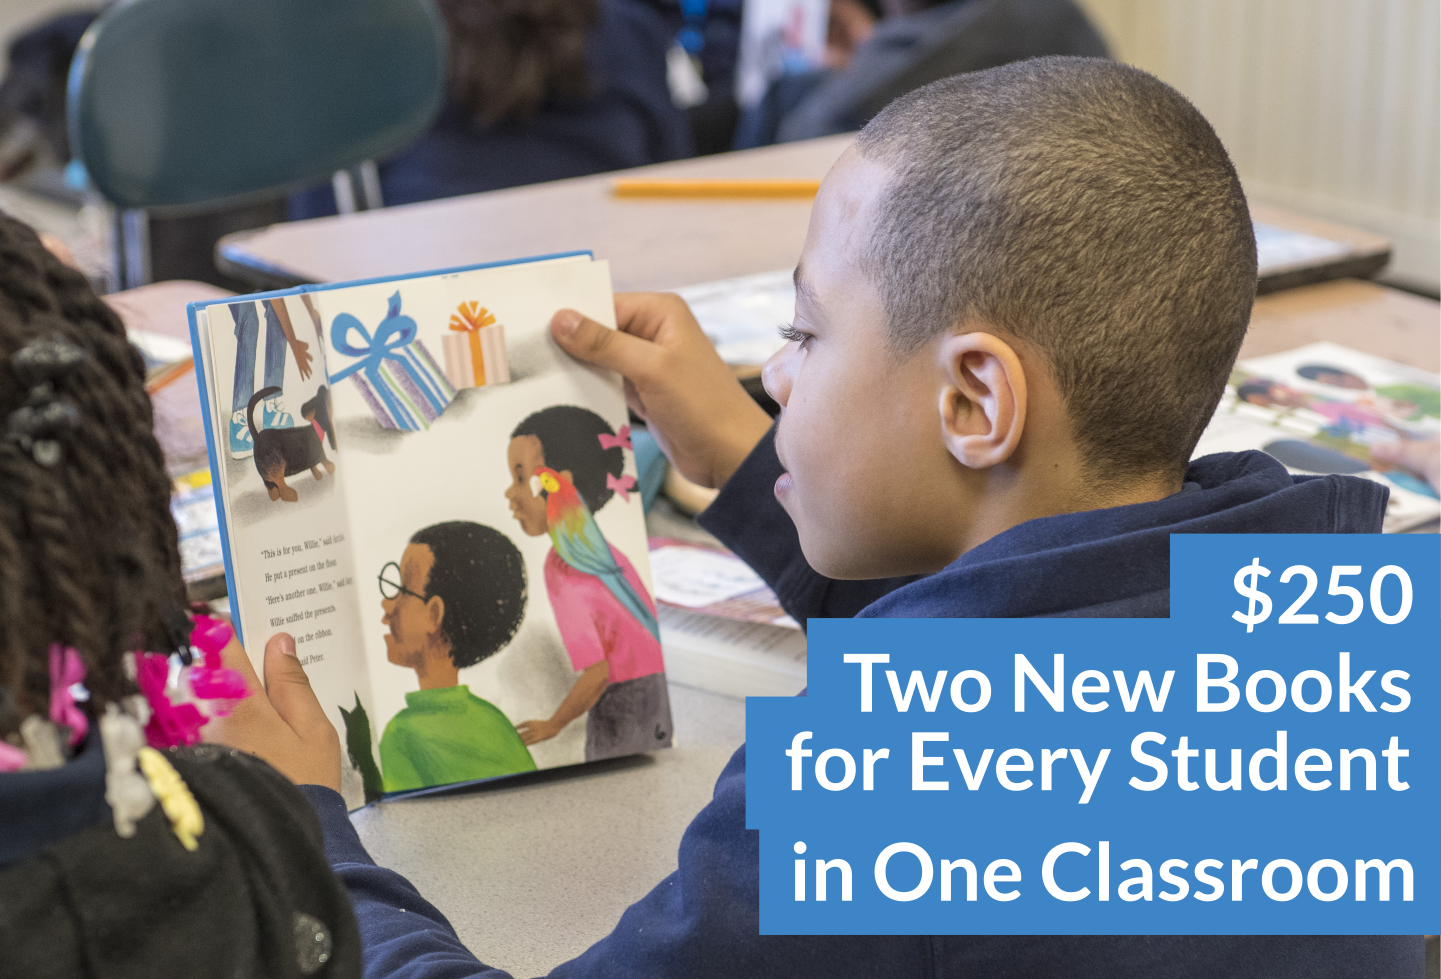 Two New Books for Every Student in One Classroom